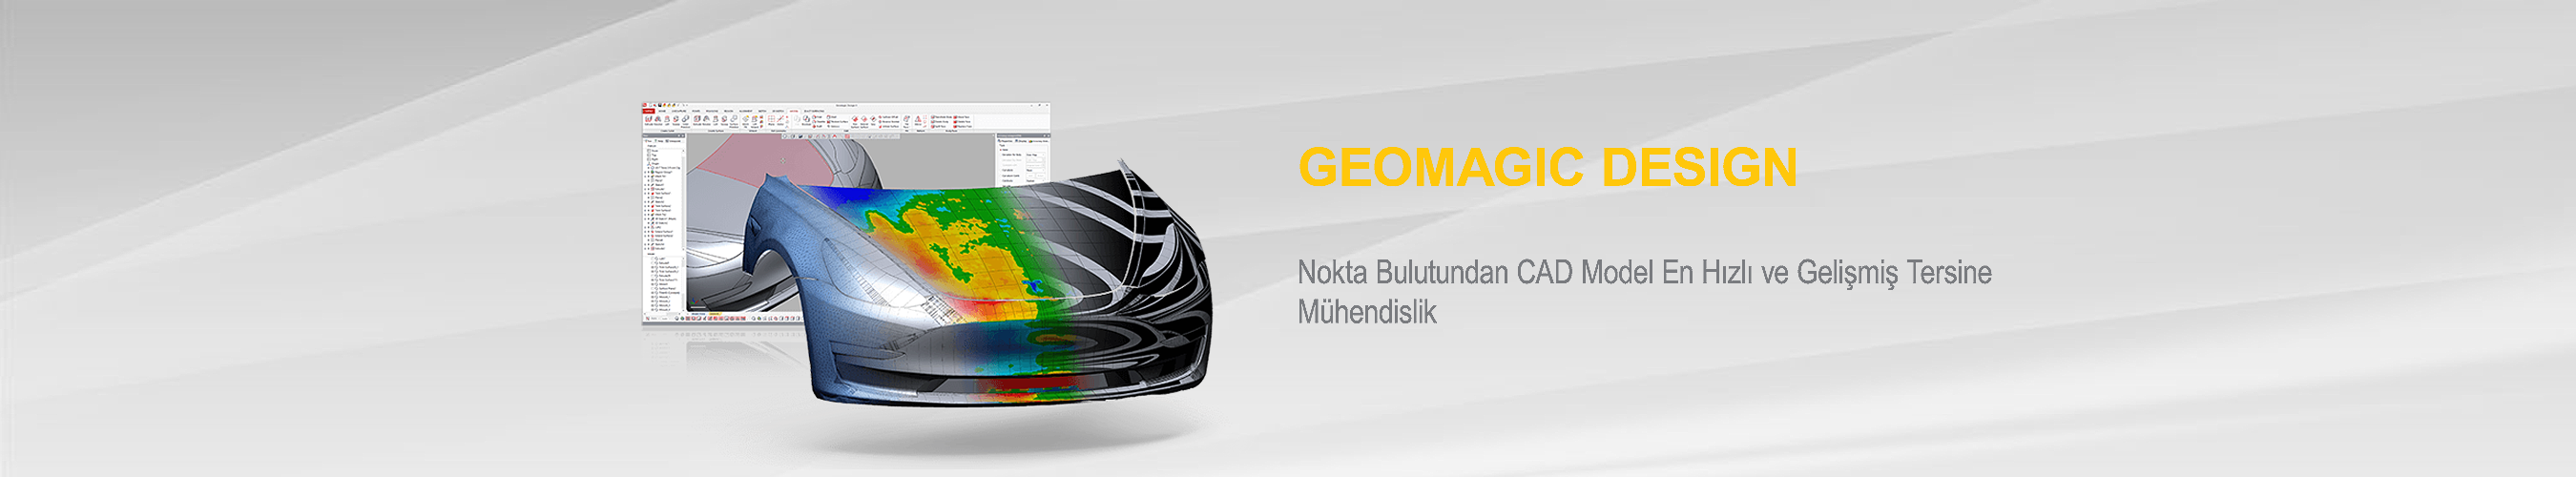 geomagic-design-x-1